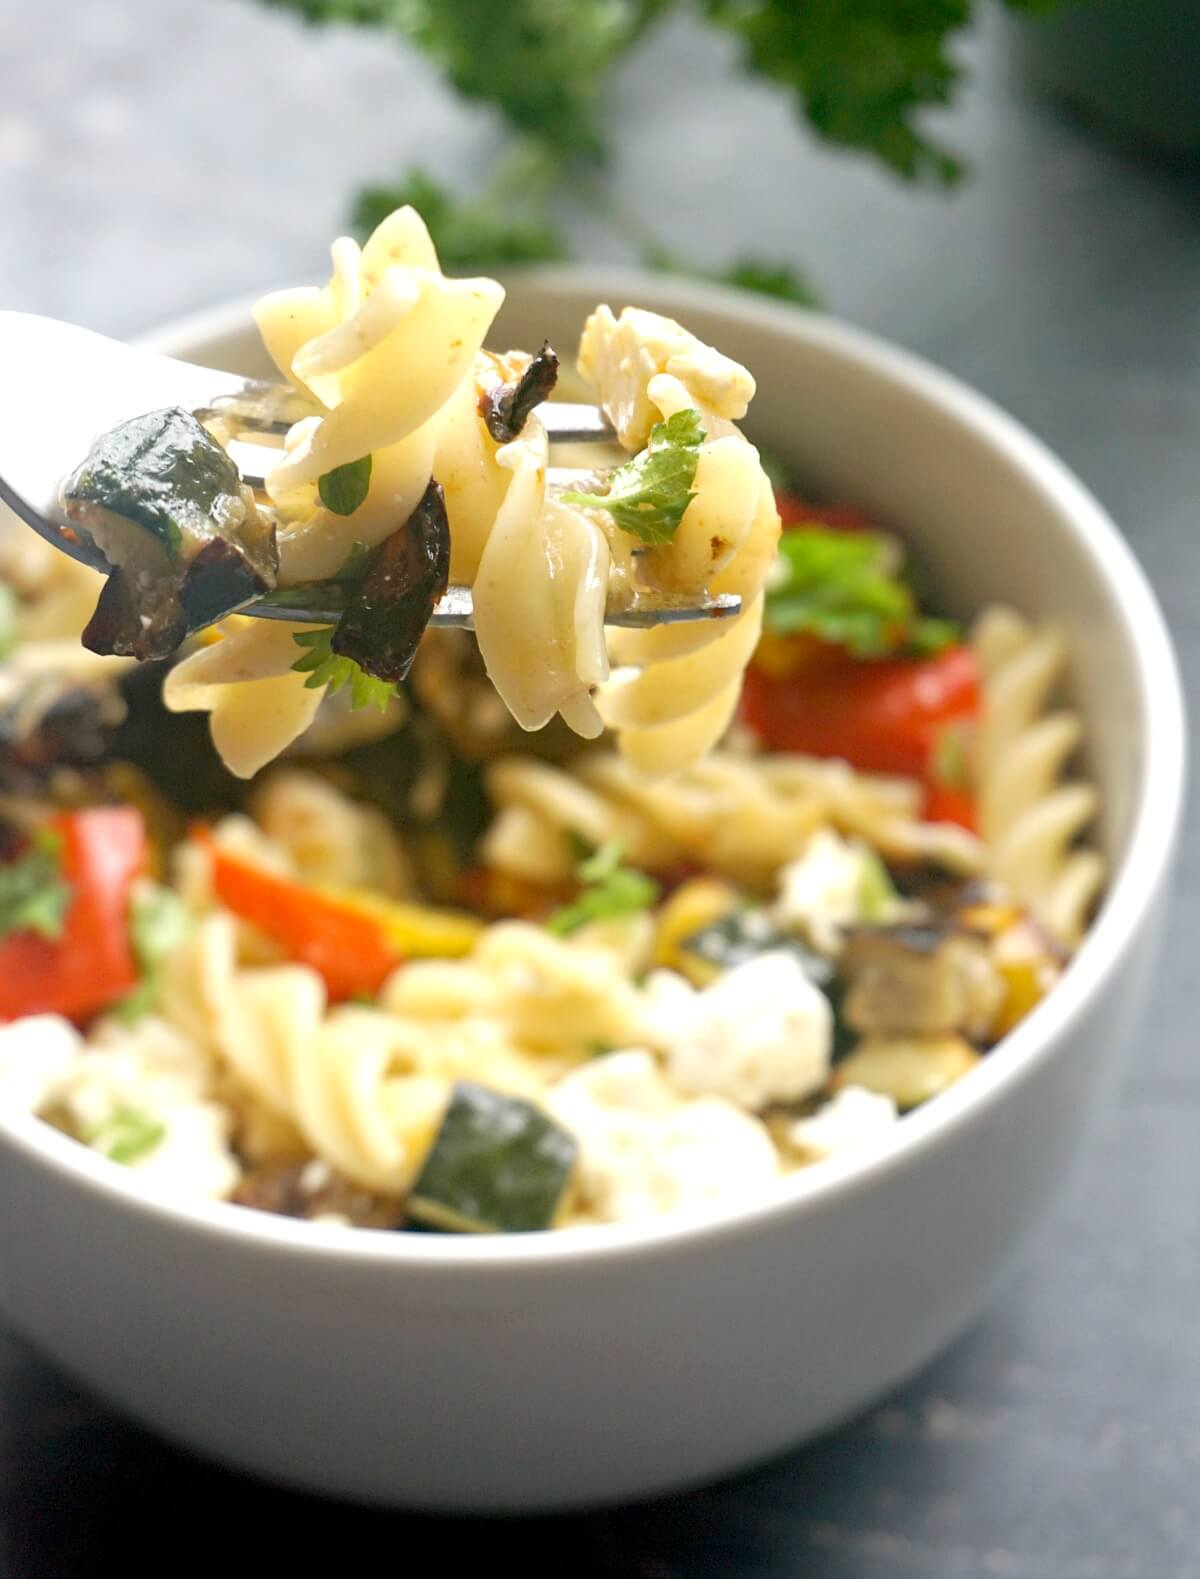 A white bowl with pasta salad that has veggies and feta in